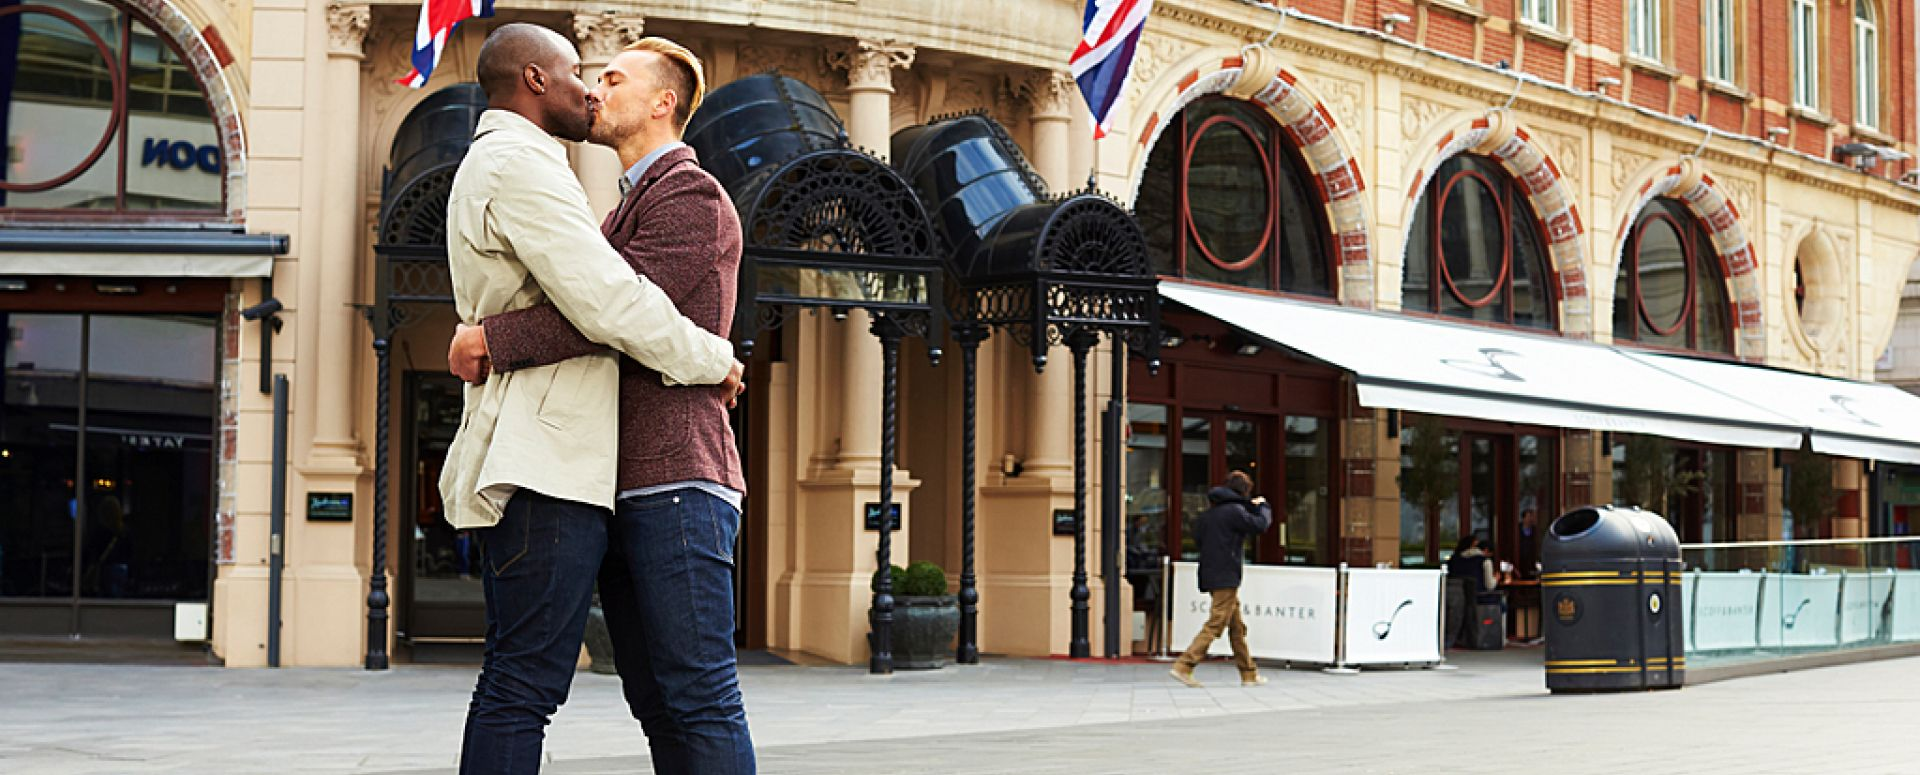 Love is GREAT. Gay couple embracing and kissing outside of The Hampshire Hotel, London.